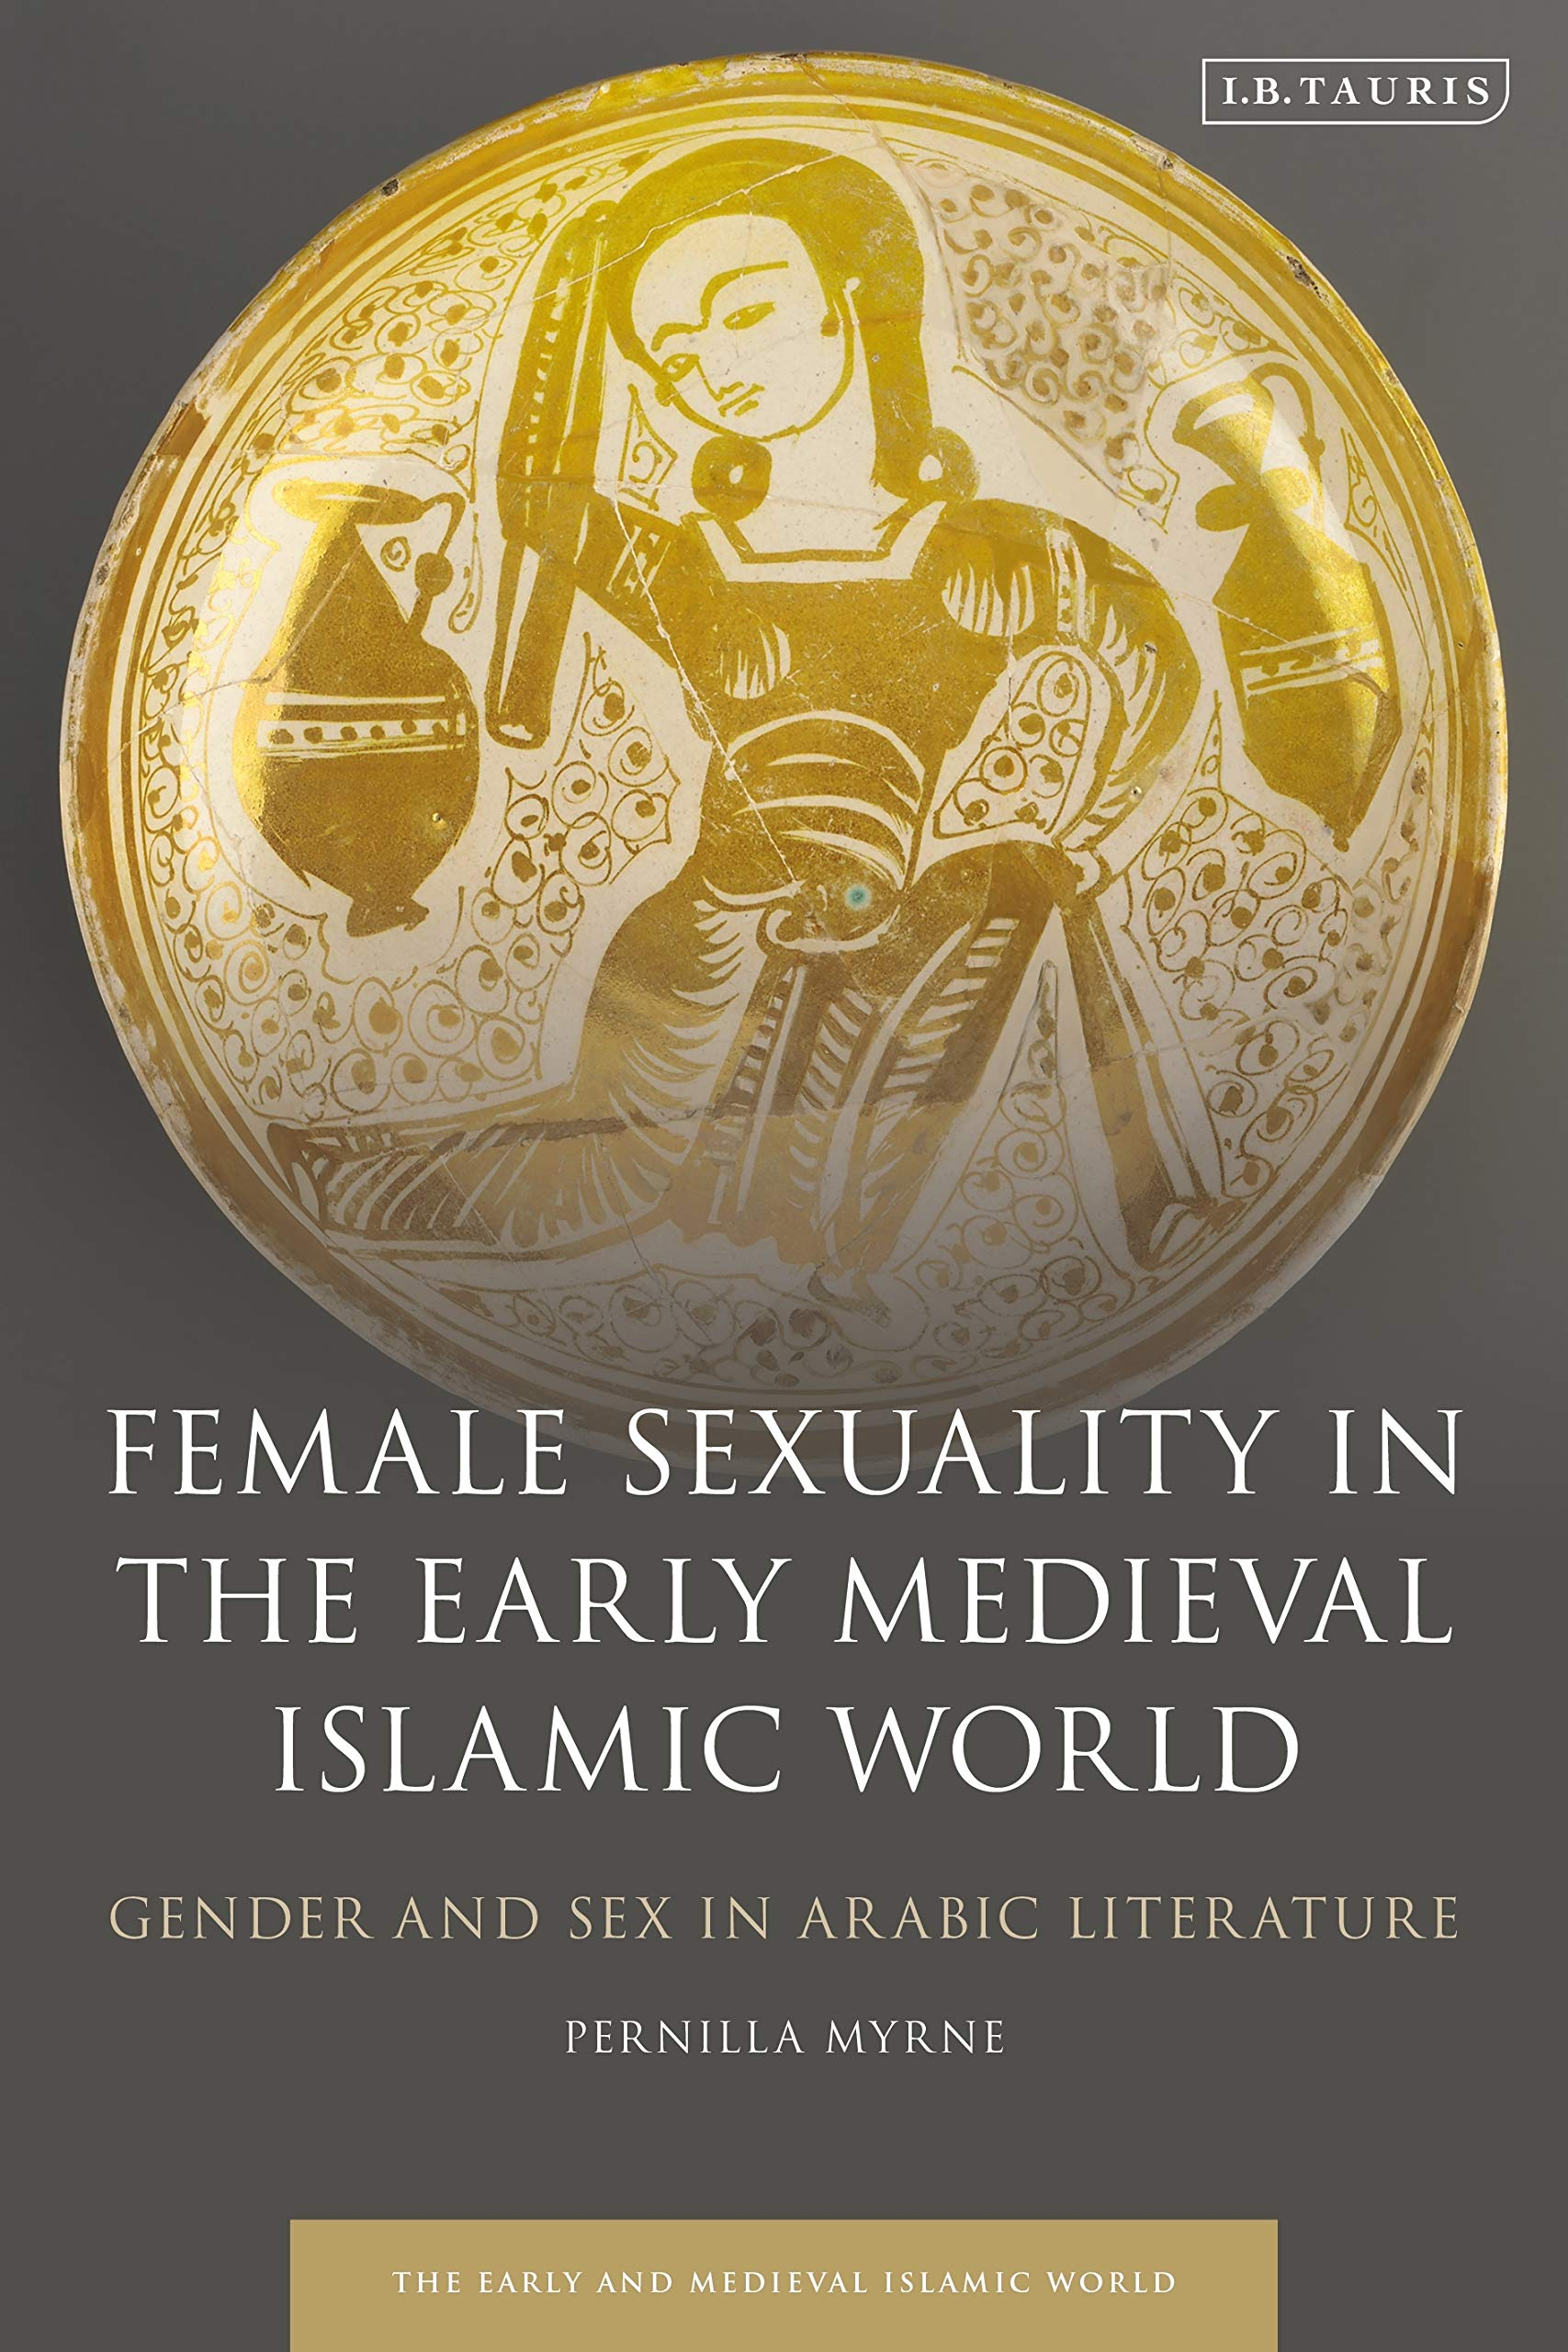 Female Sexuality in the Early Medieval Islamic World: Gender and Sex in Arabic Literature (Early and Medieval Islamic World) by I.B. Tauris